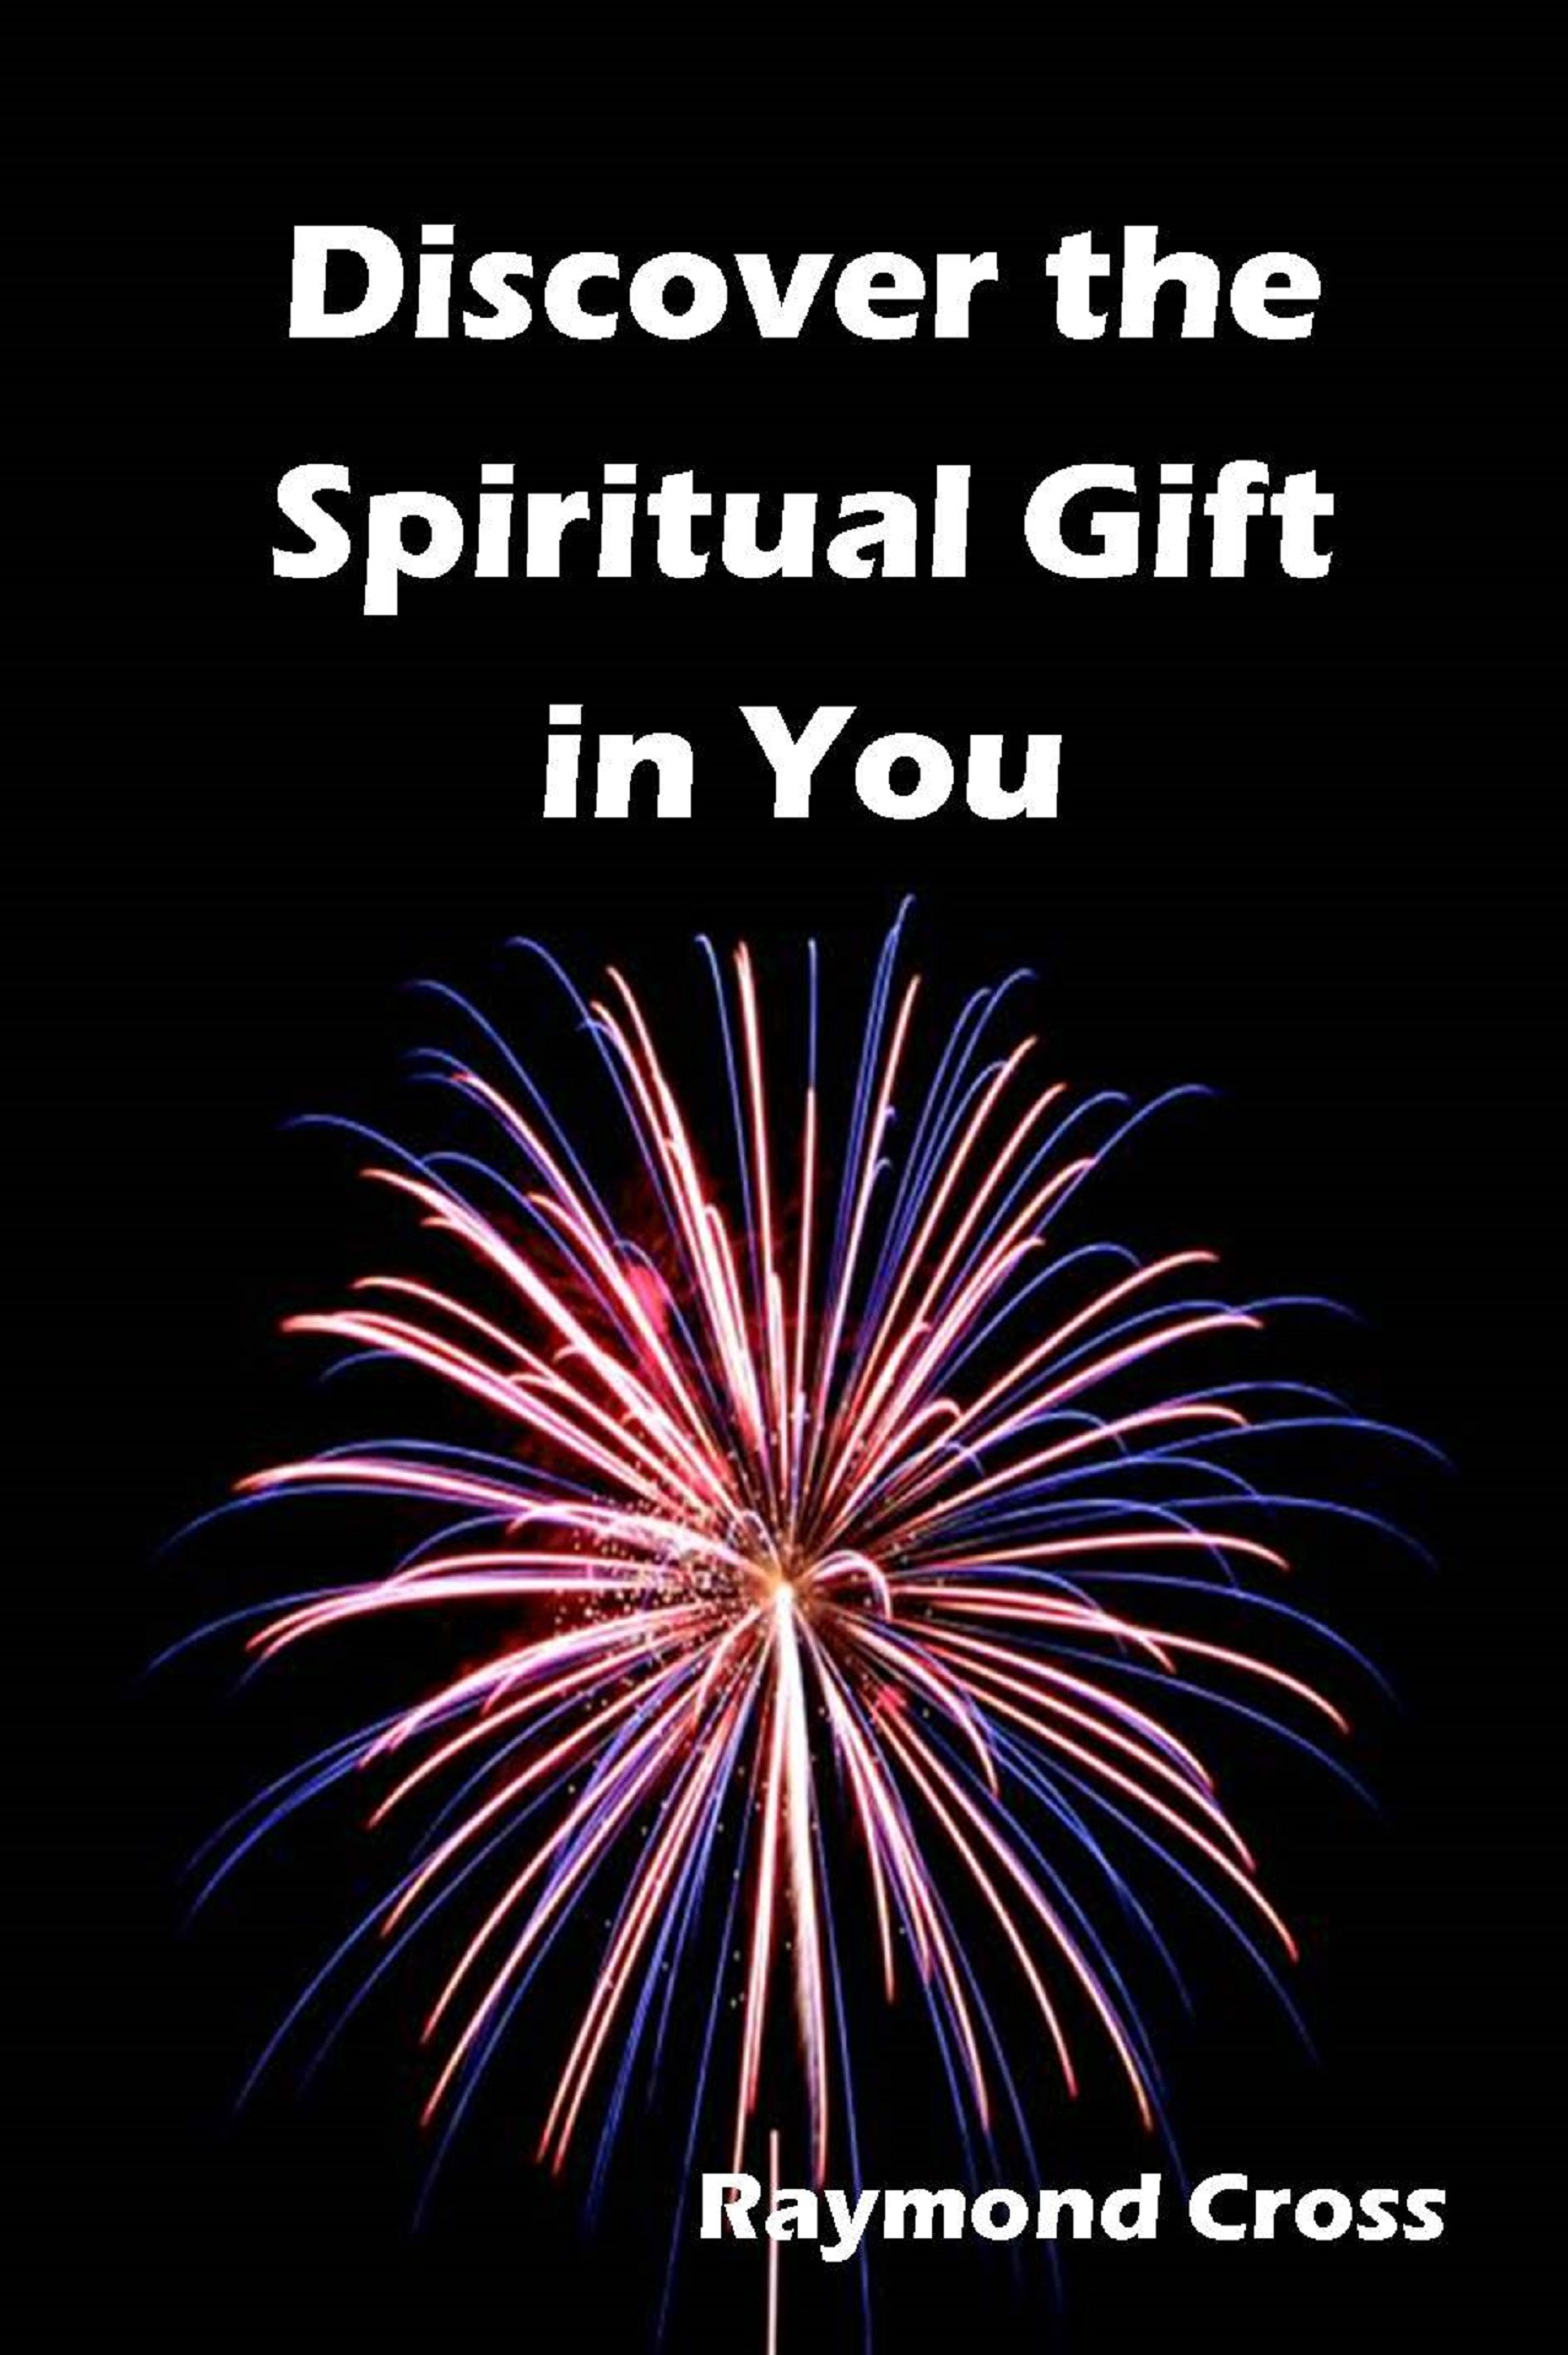 A biblical safari into Holy Spirit empowerment and self discovery. Explore motivational spiritual gifts that radiate outward from within to harmonize all ...